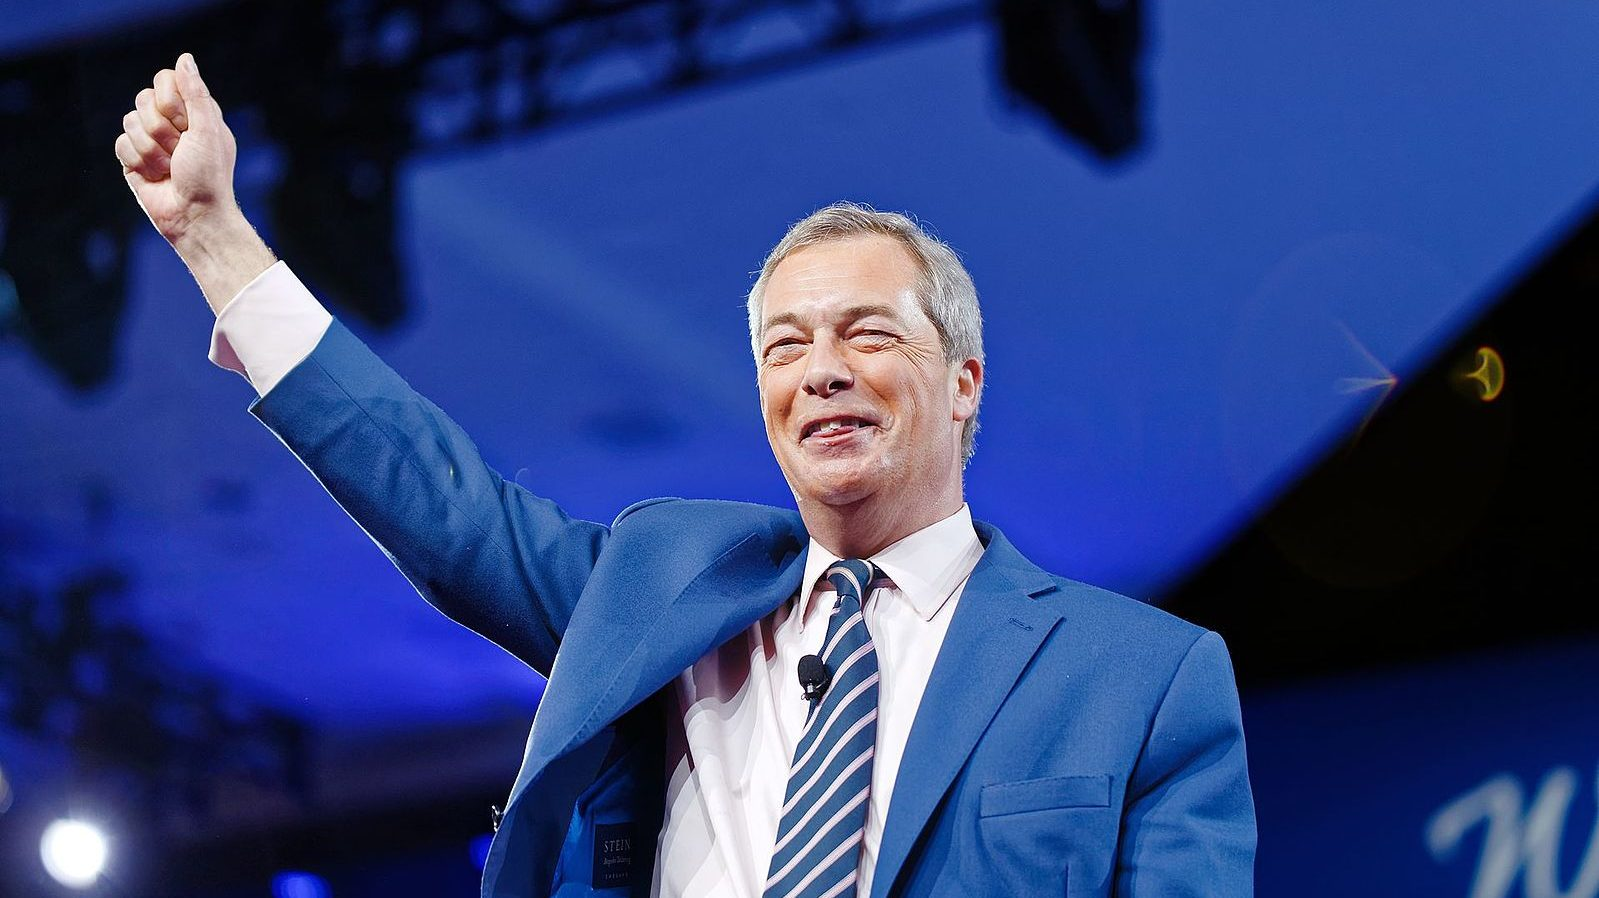 cropped-Nigel_Farage_at_CPAC_2017_February_24th_2017_by_Michael_Vadon_16.jpg